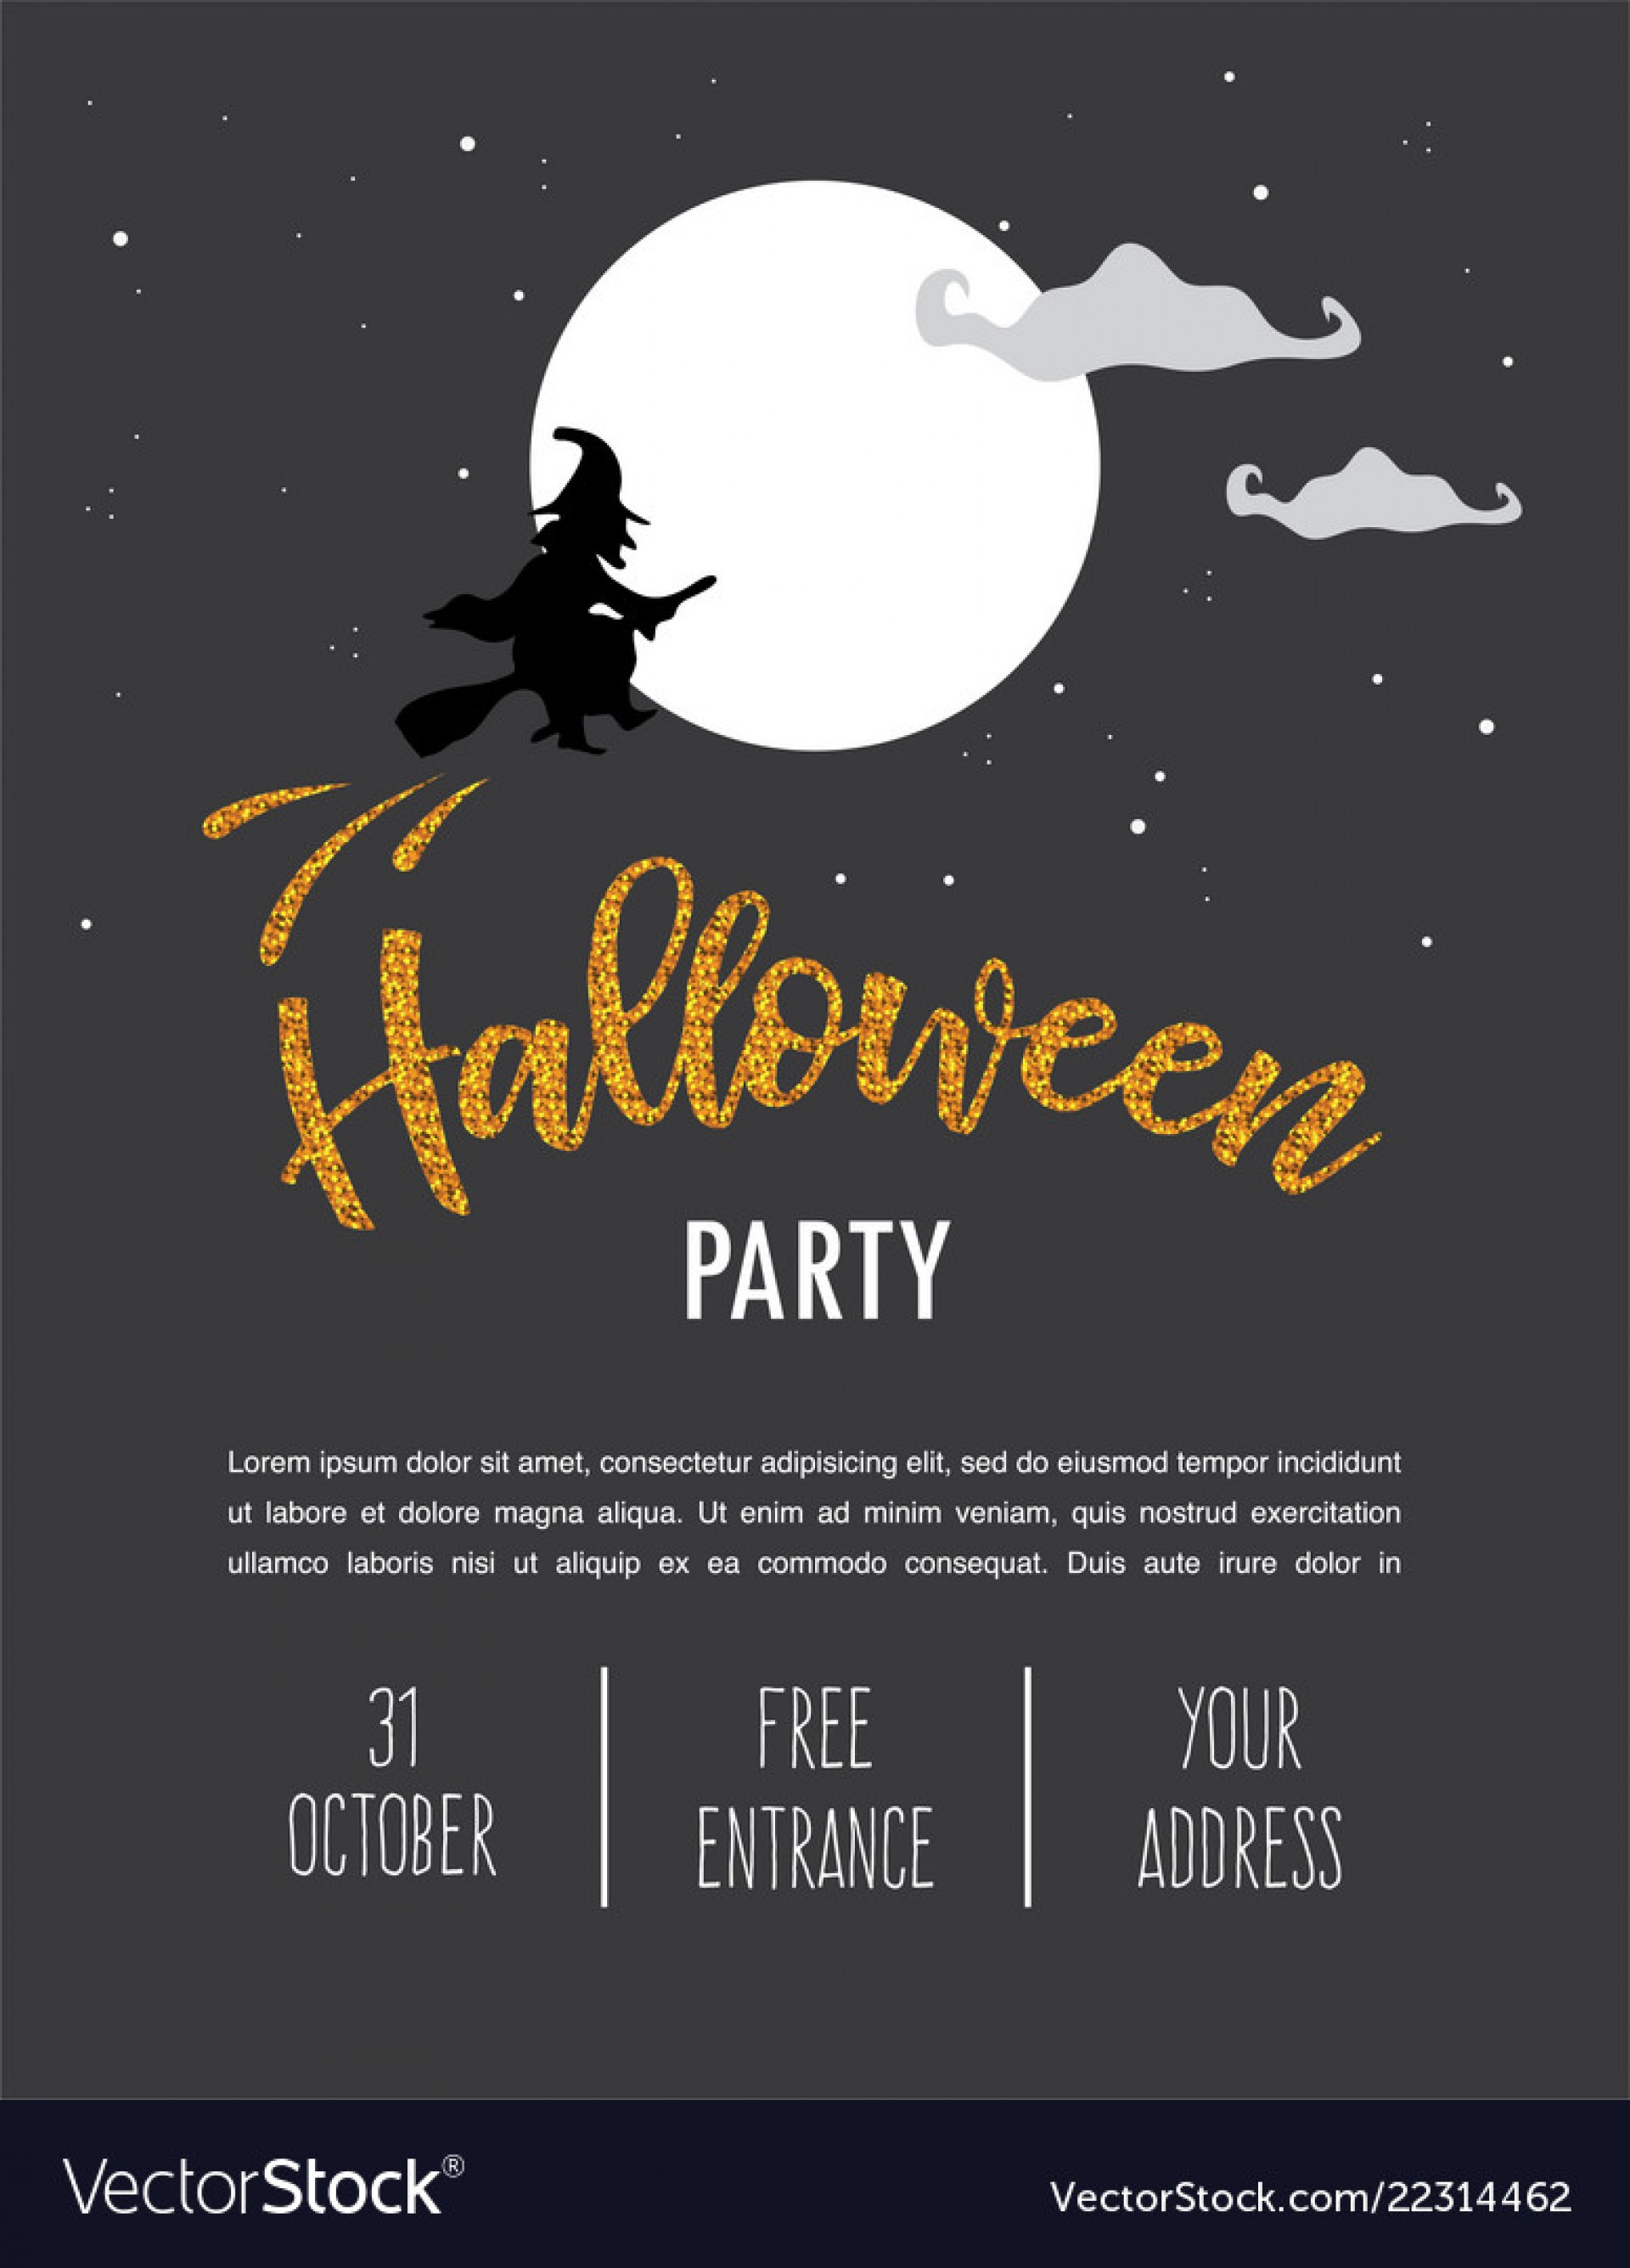 007 Exceptional Free Halloween Party Invitation Template High Definition  Printable Birthday For Word Download1920